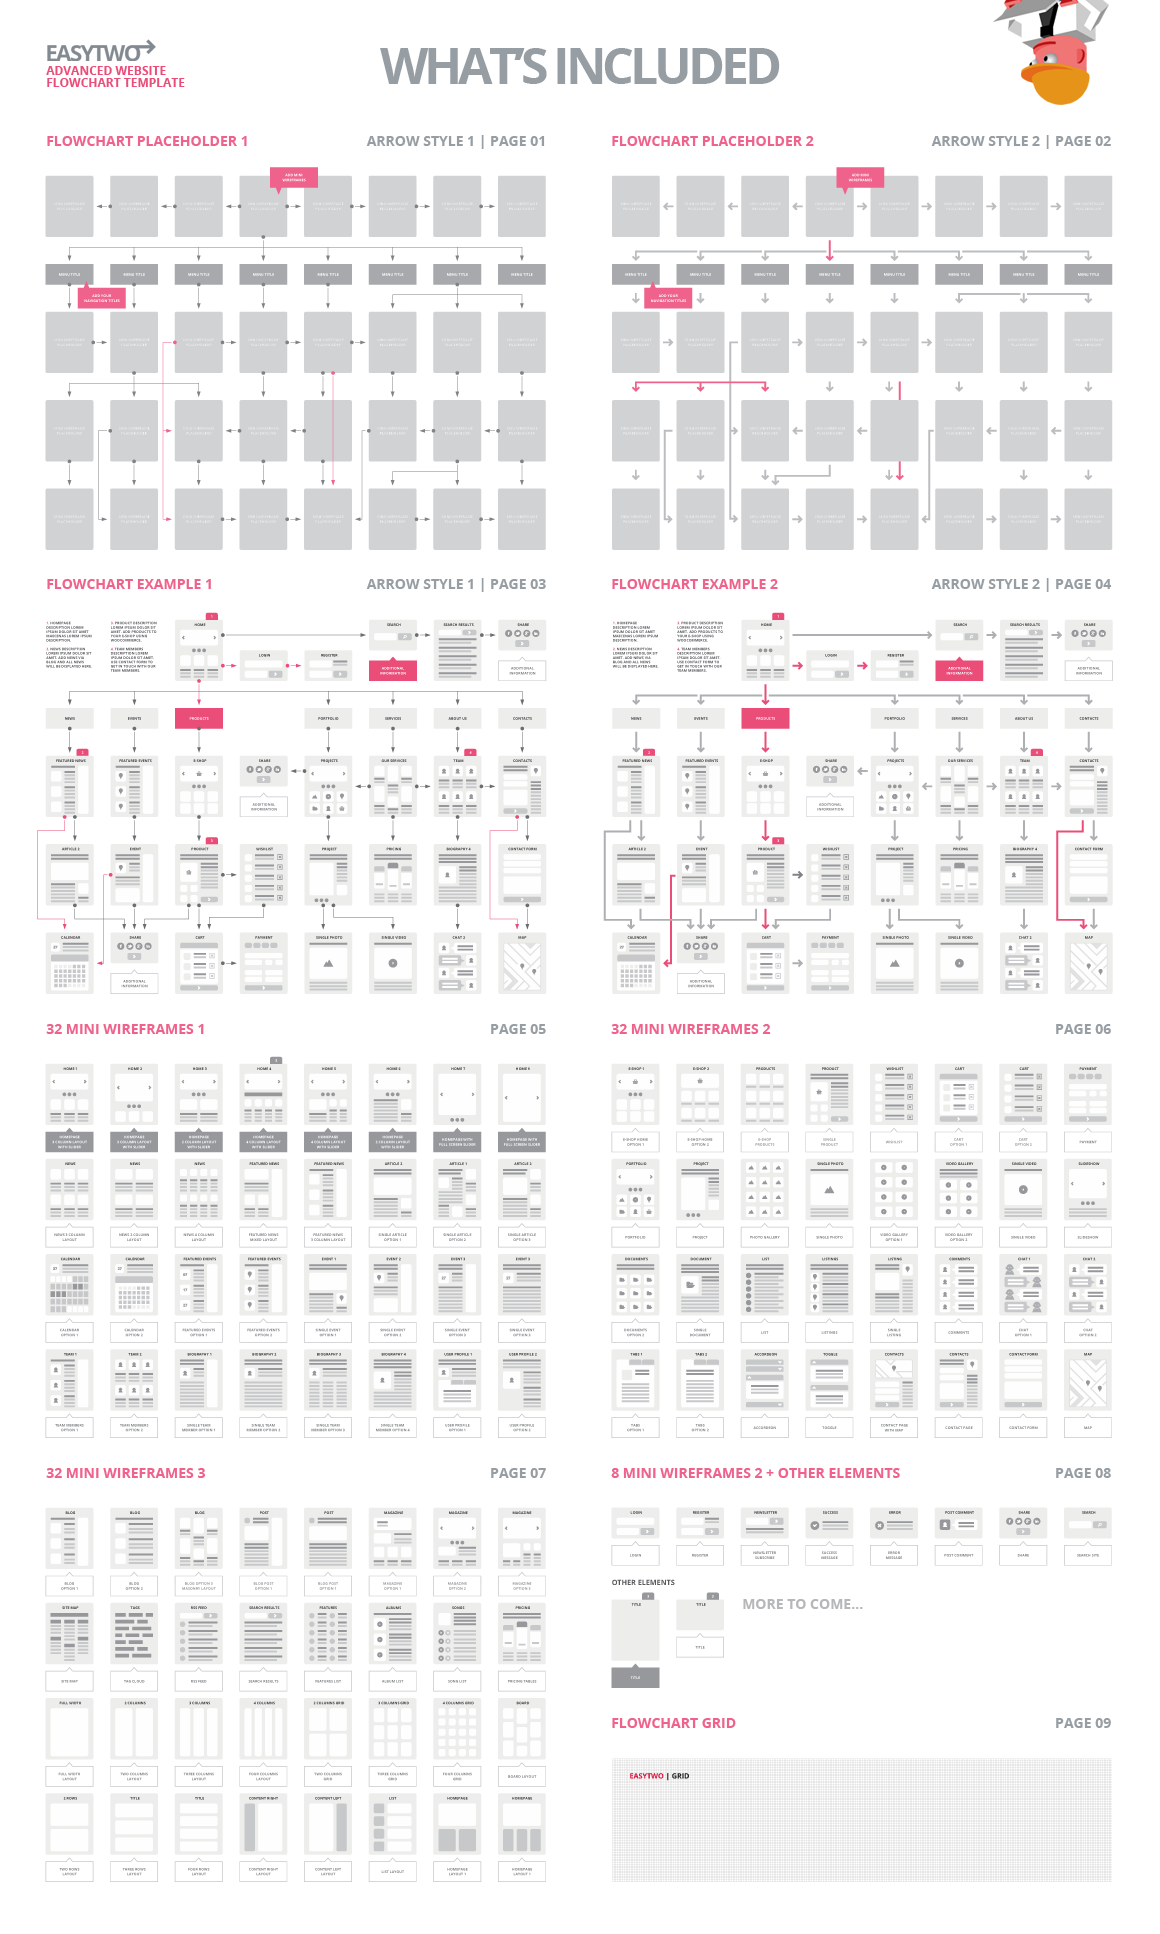 easytwo advanced website flowchart template 104 mini wireframe and